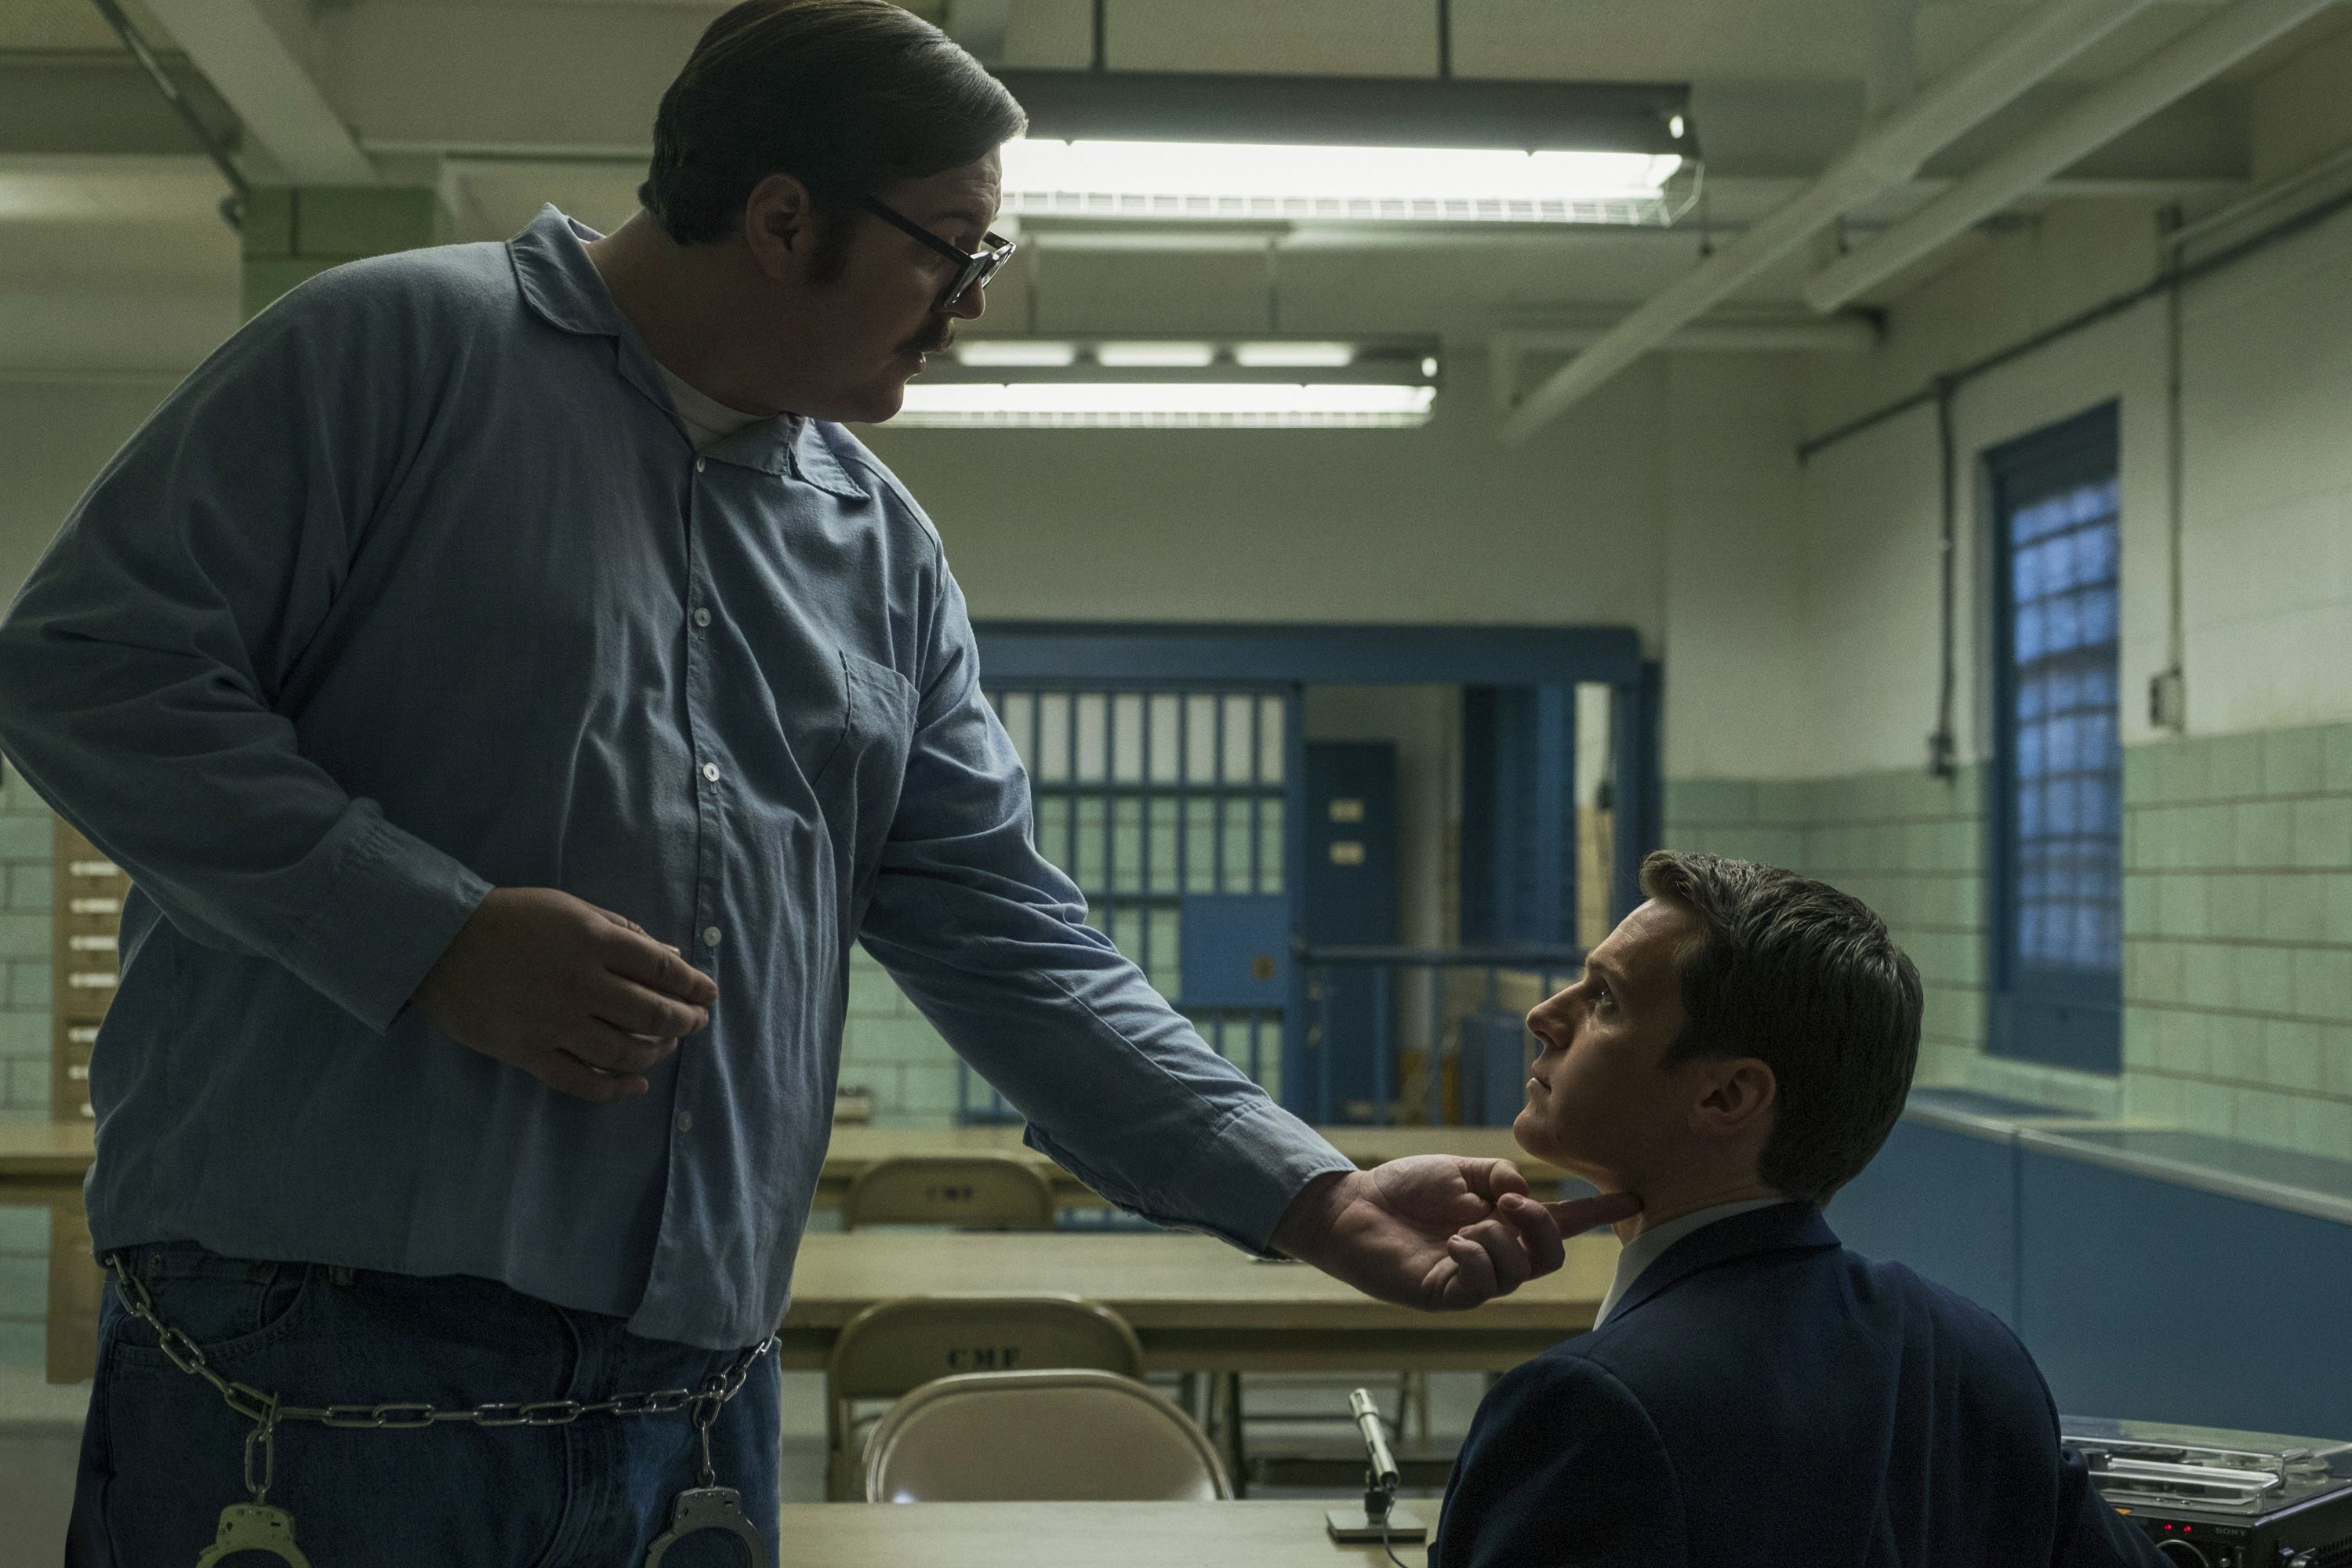 What the Real 'Mindhunter' Season 2 Serial Killers Look Like Compared to the Actors